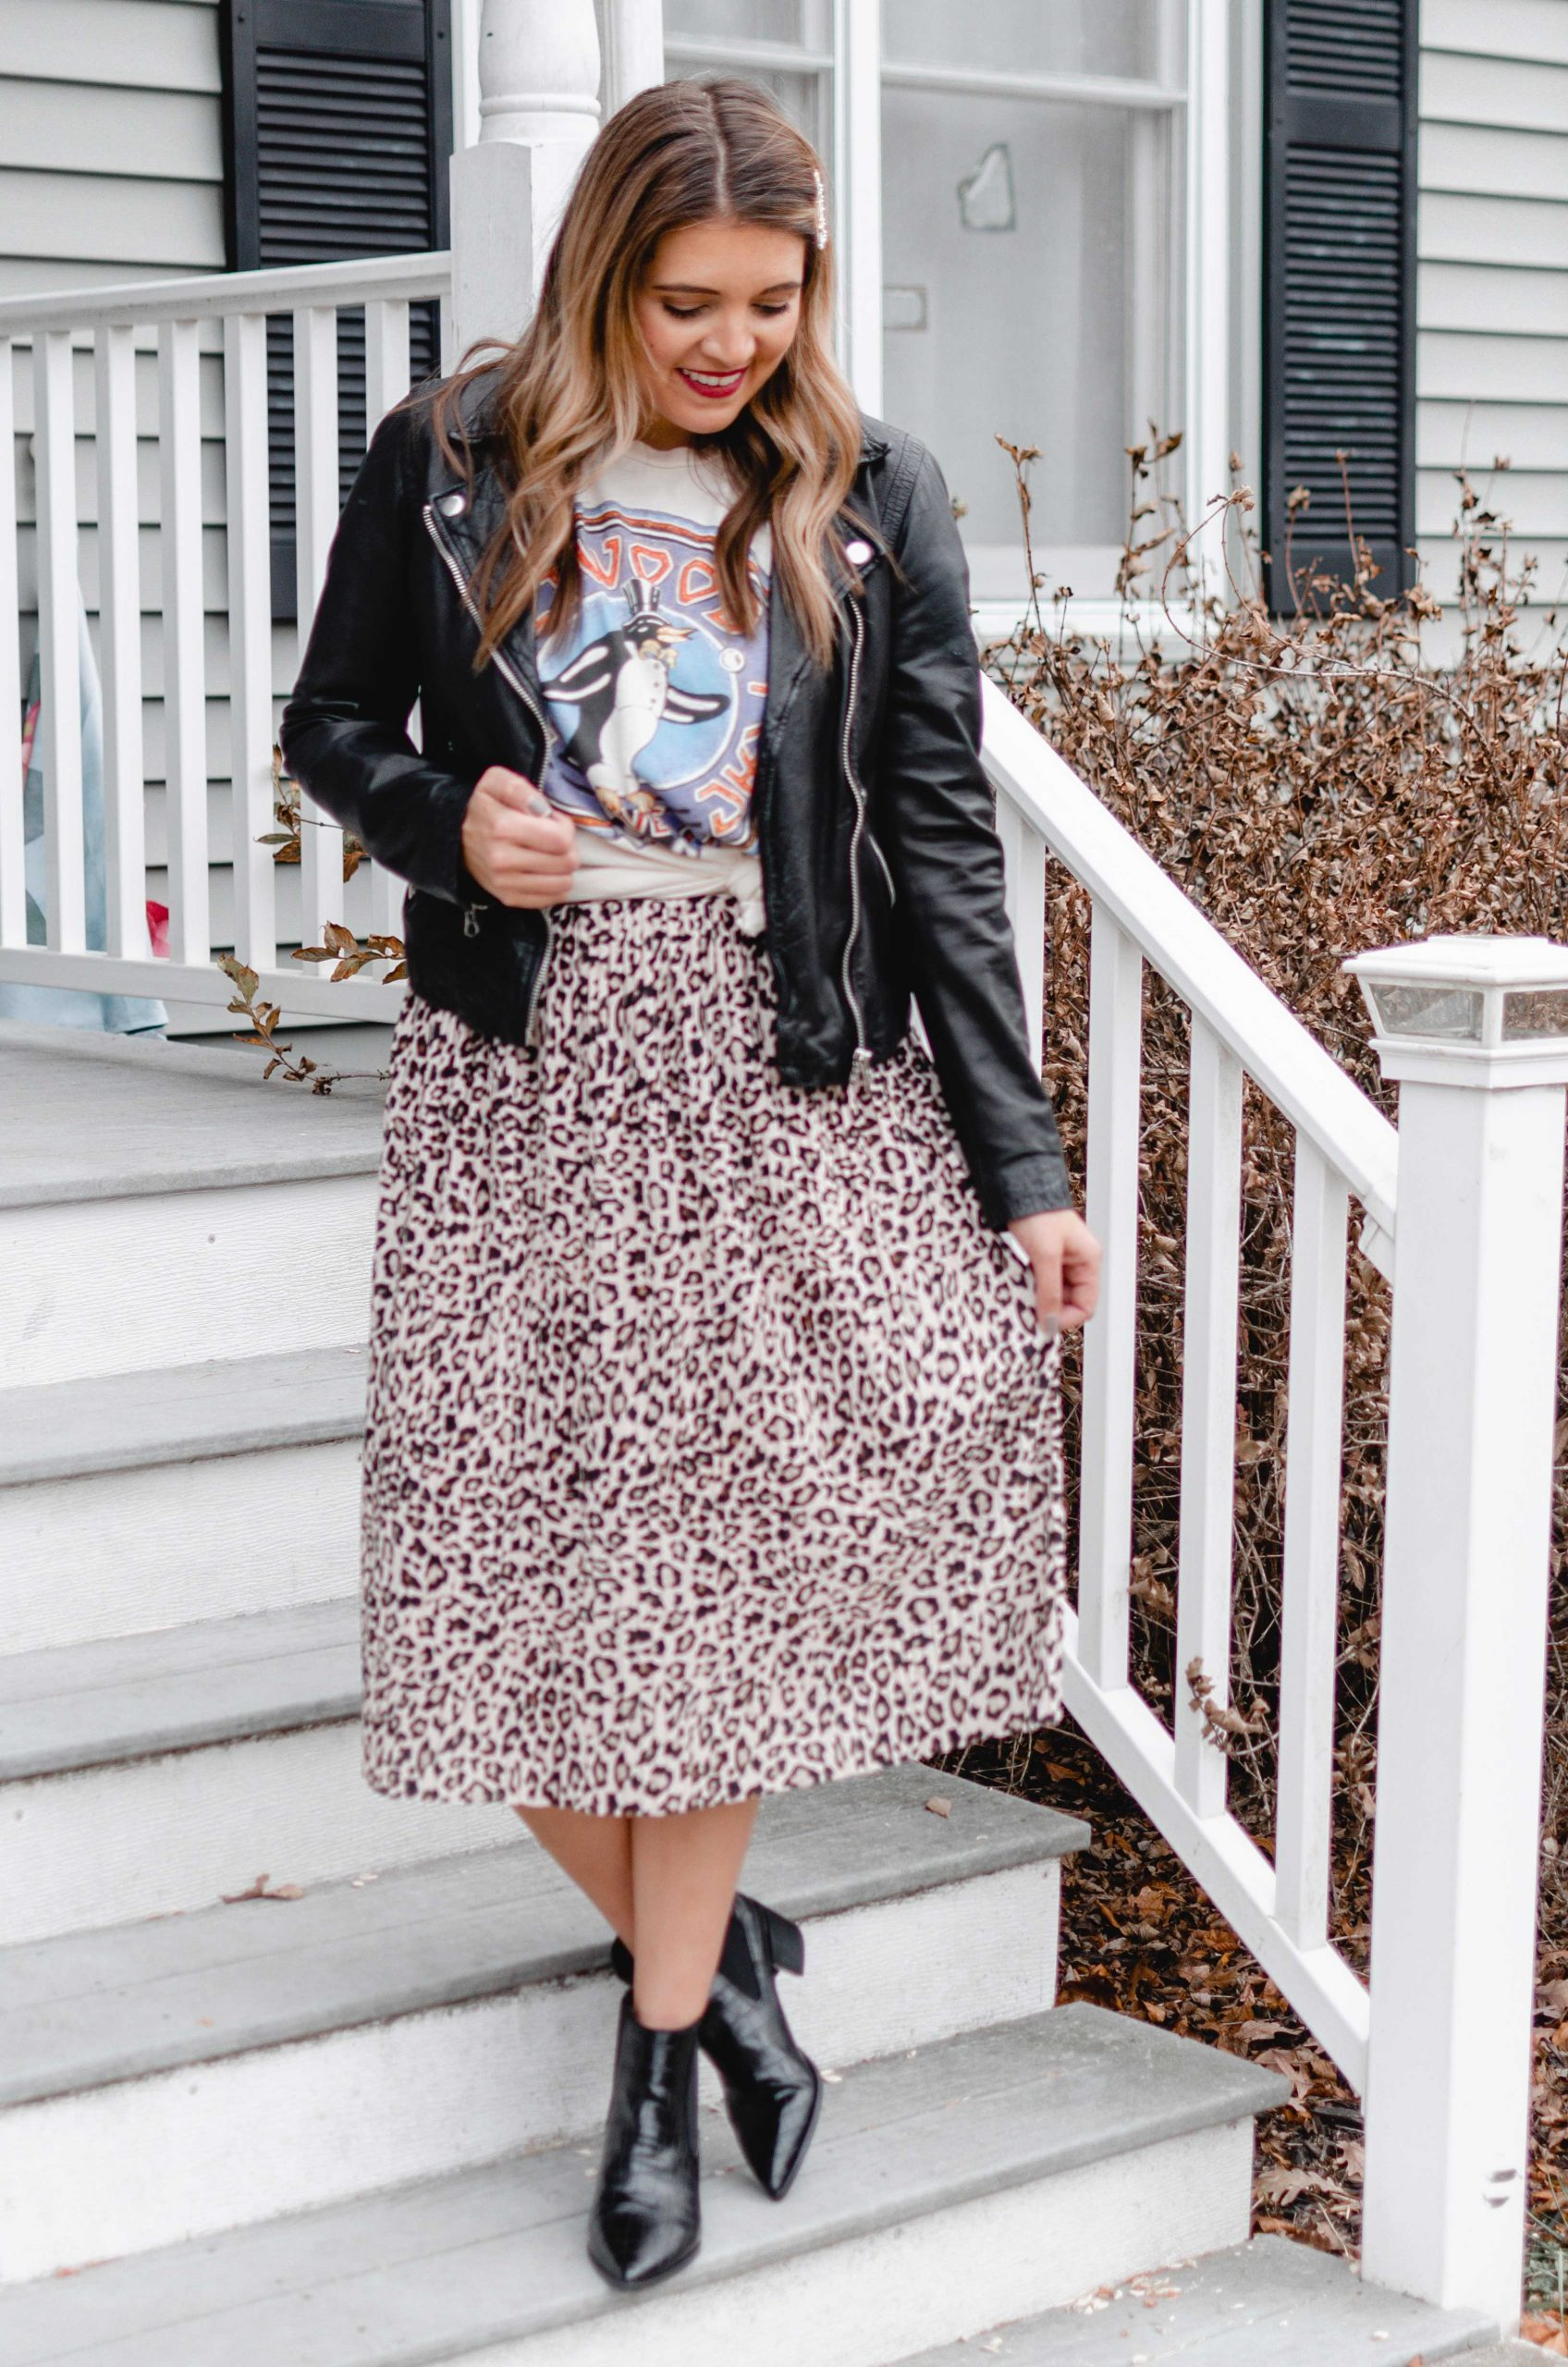 Virginia blogger, Lauren Dix, shares 4 winter graphic tee outfits.